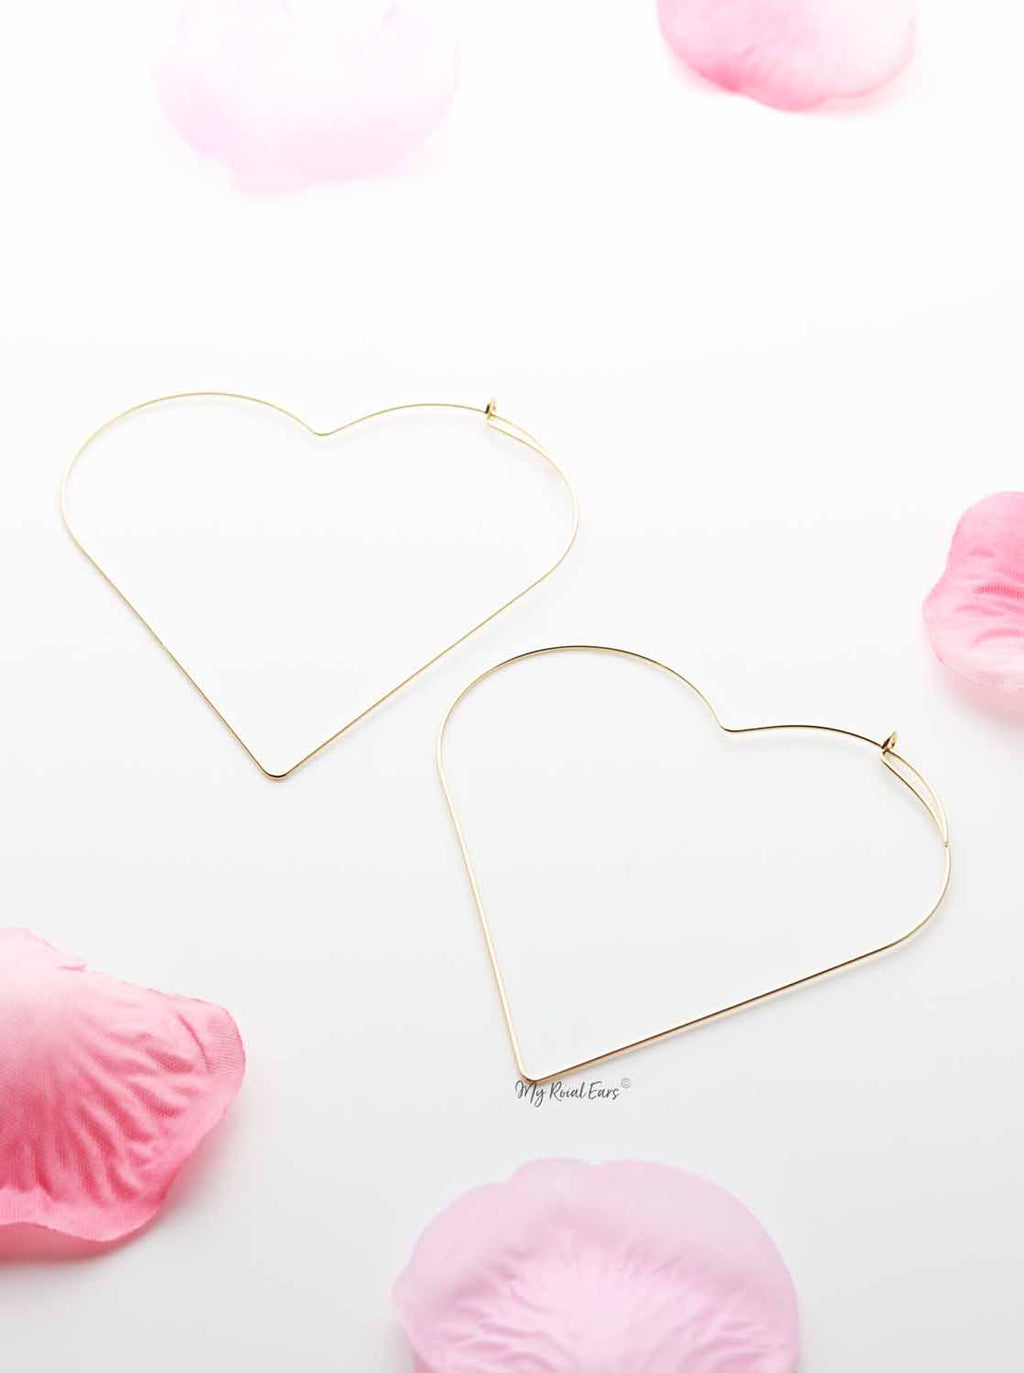 Mimosa- lightweight heart shape hoop earrings - My Roial Ears LTD